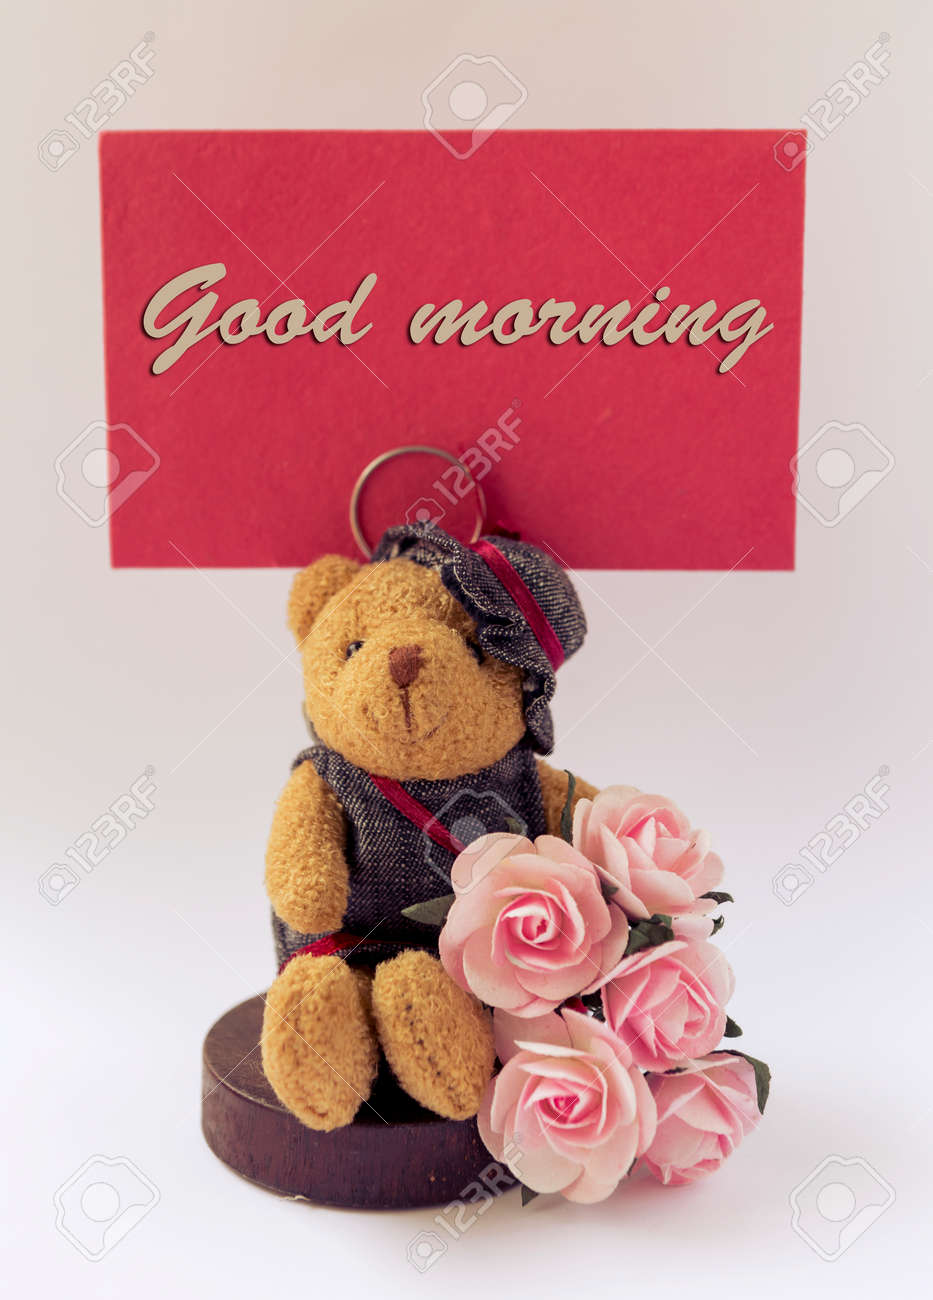 Good Morning Card With Teddy Bear And Rose Stock Photo Picture And